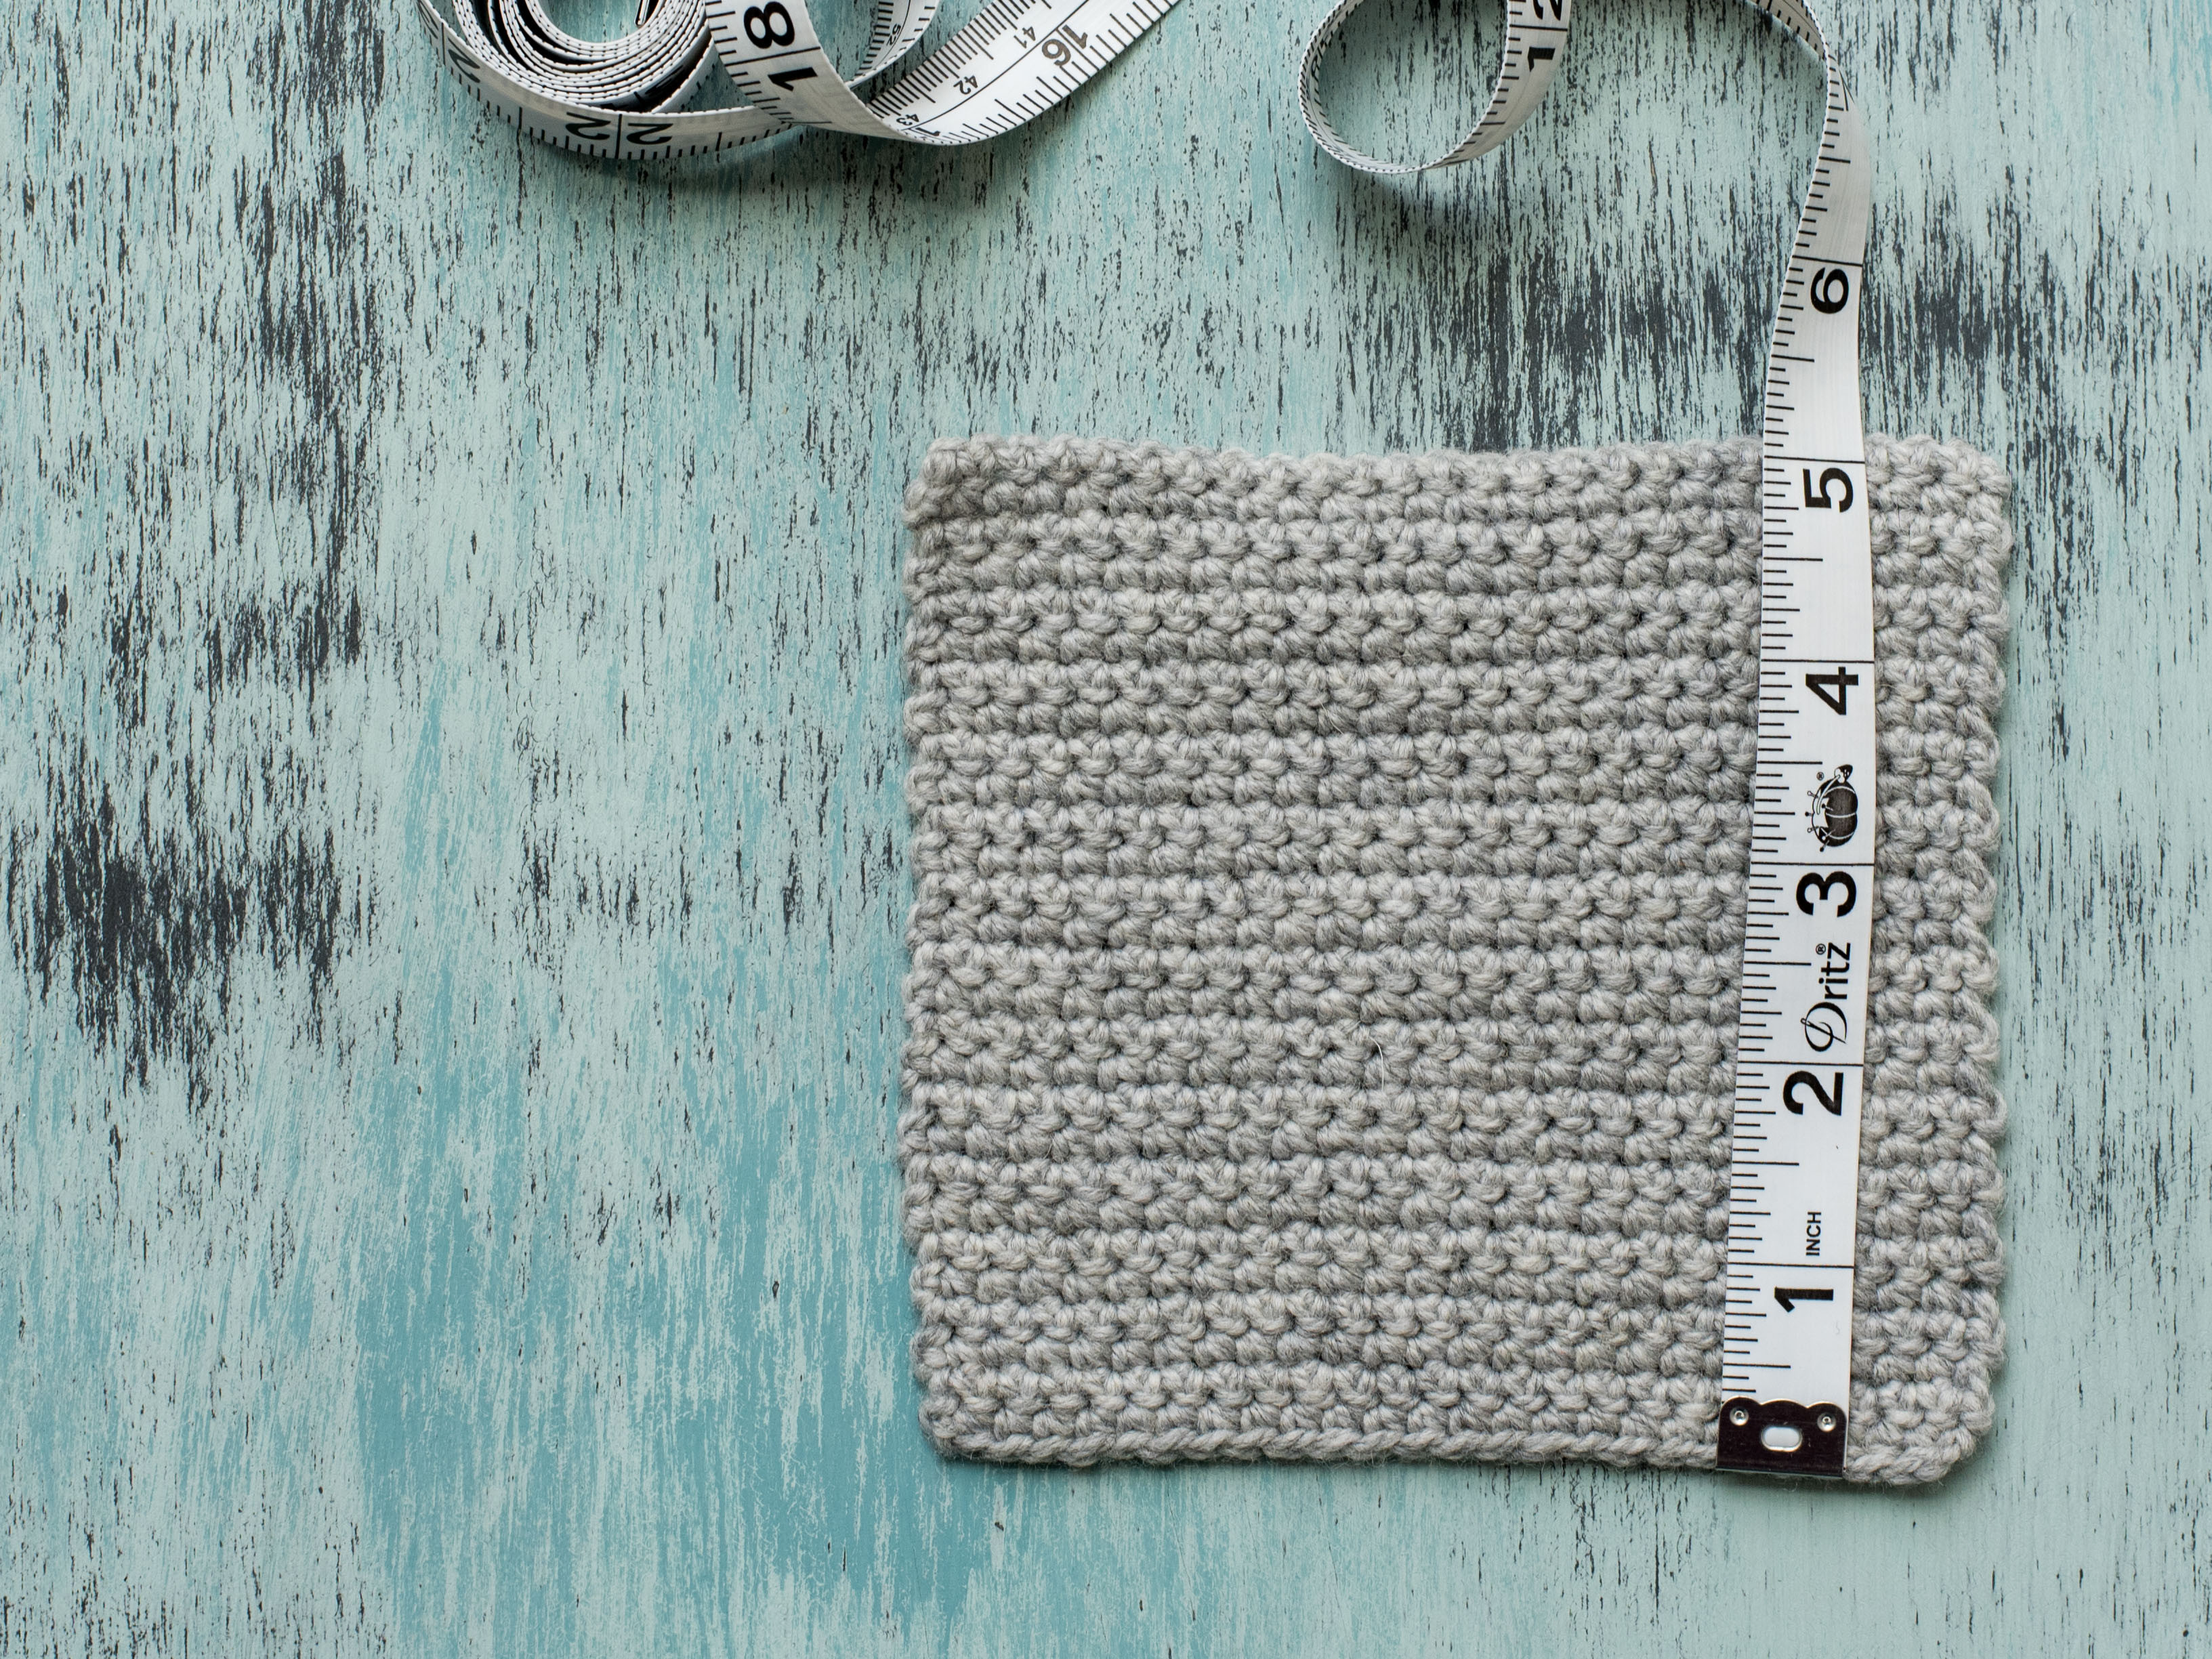 Crochet Gauge Awesome Crochet Gauge 101 why Gauge Matters and How to Match It Of Attractive 41 Pictures Crochet Gauge